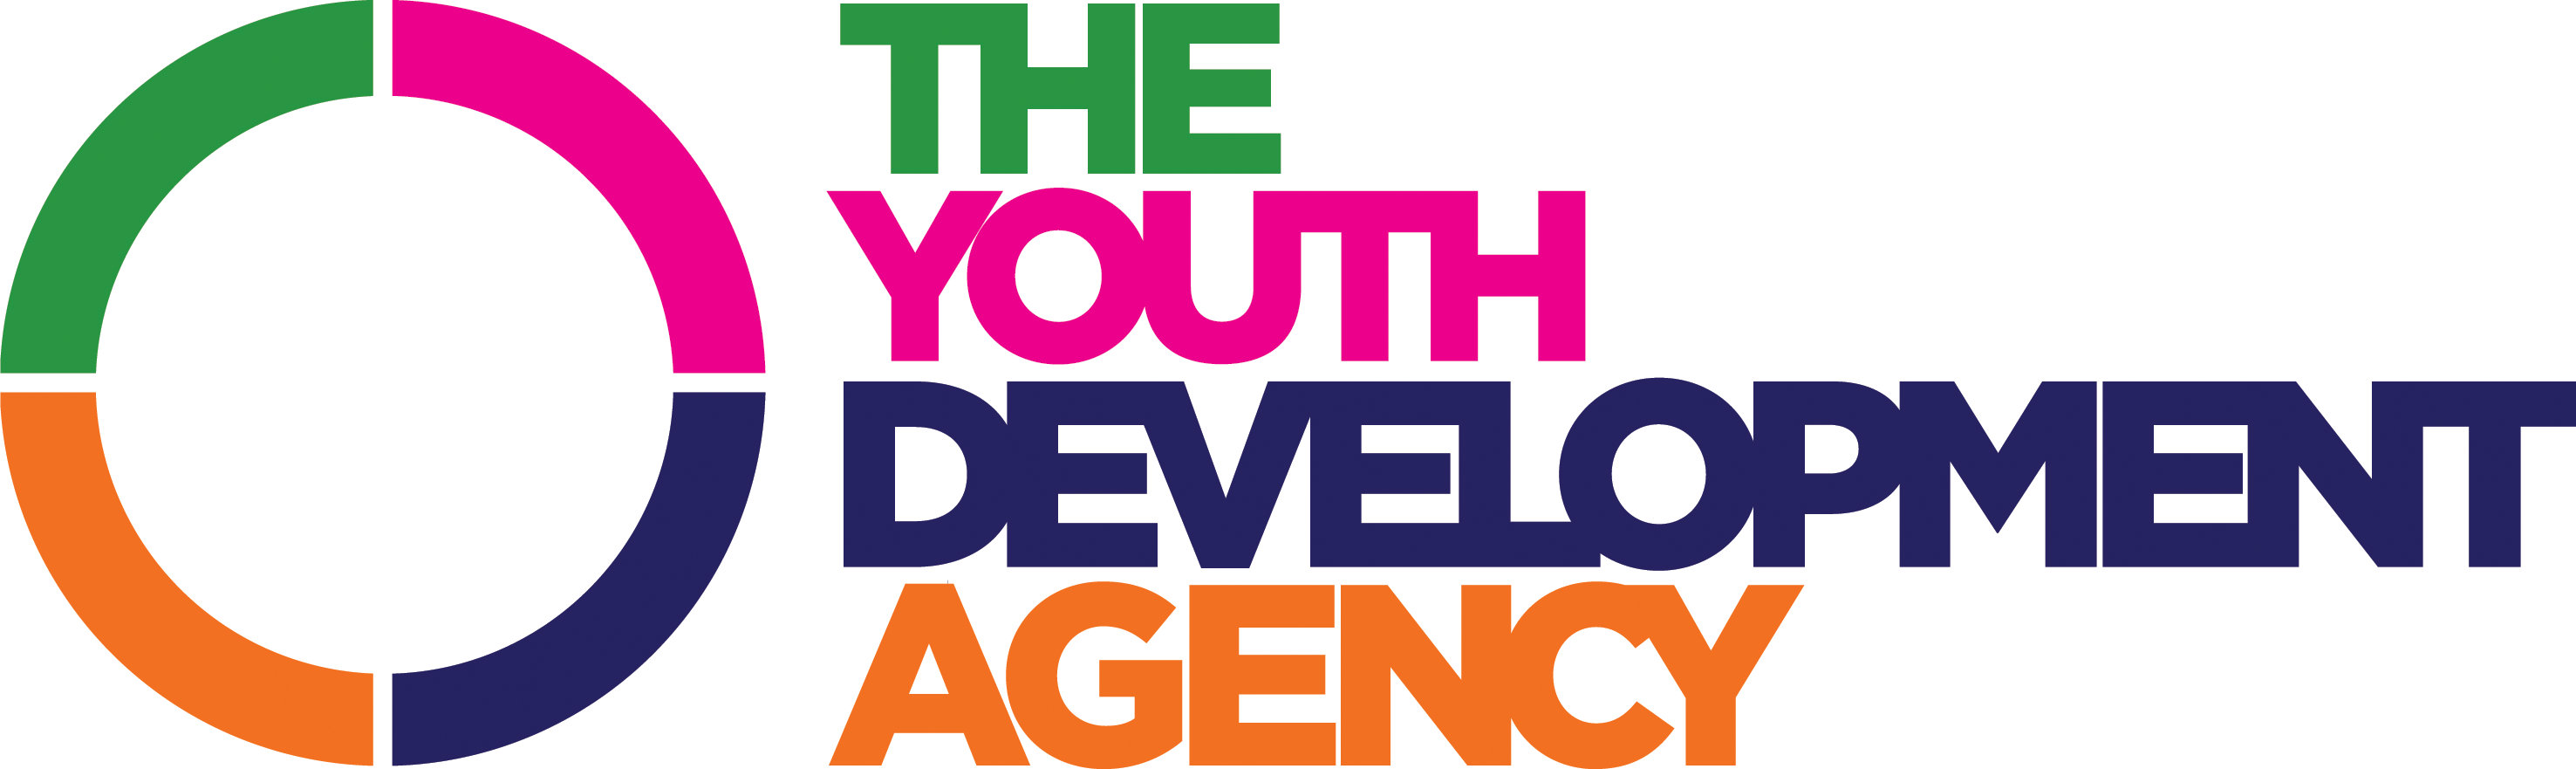 The Youth Development Agency